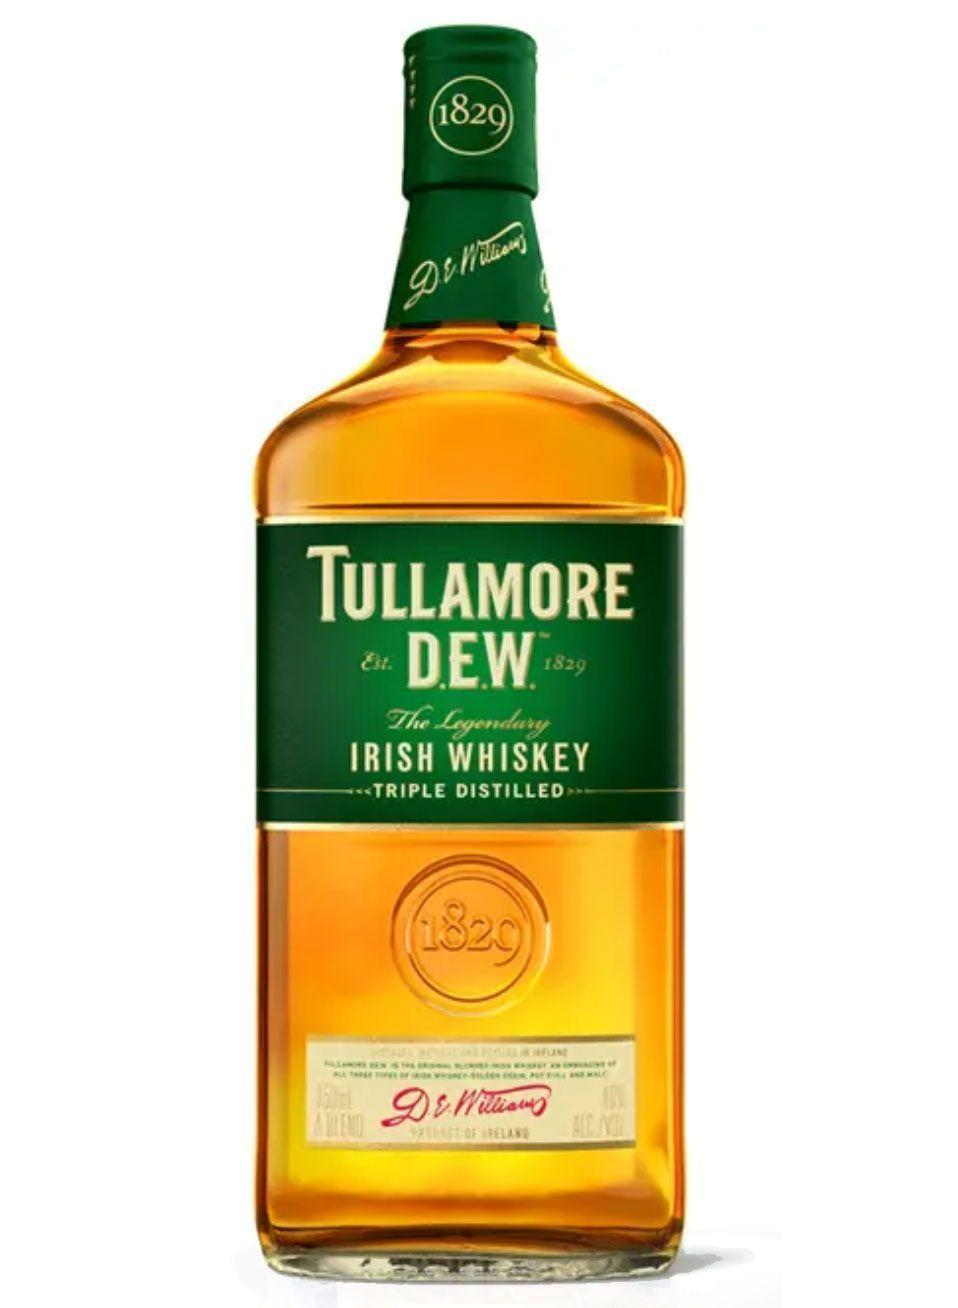 """<p><strong>Tullamore</strong></p><p>drizly.com</p><p><strong>$27.80</strong></p><p><a href=""""https://go.redirectingat.com?id=74968X1596630&url=https%3A%2F%2Fdrizly.com%2Fliquor%2Fwhiskey%2Firish-whiskey%2Ftullamore-dew-irish-whiskey%2Fp374%3Fvariant%3D522&sref=https%3A%2F%2Fwww.delish.com%2Fentertaining%2Fg31132182%2Fbest-irish-whiskey%2F"""" rel=""""nofollow noopener"""" target=""""_blank"""" data-ylk=""""slk:BUY NOW"""" class=""""link rapid-noclick-resp"""">BUY NOW</a></p><p>If you want a sure-fire win, this whiskey is your best bet. It's the second-largest selling brand of Irish whiskey in the world. It's more gentle than some other Irish whiskeys, making it perfect for those who aren't usually comfortable drinking whiskey without a mixer. </p>"""